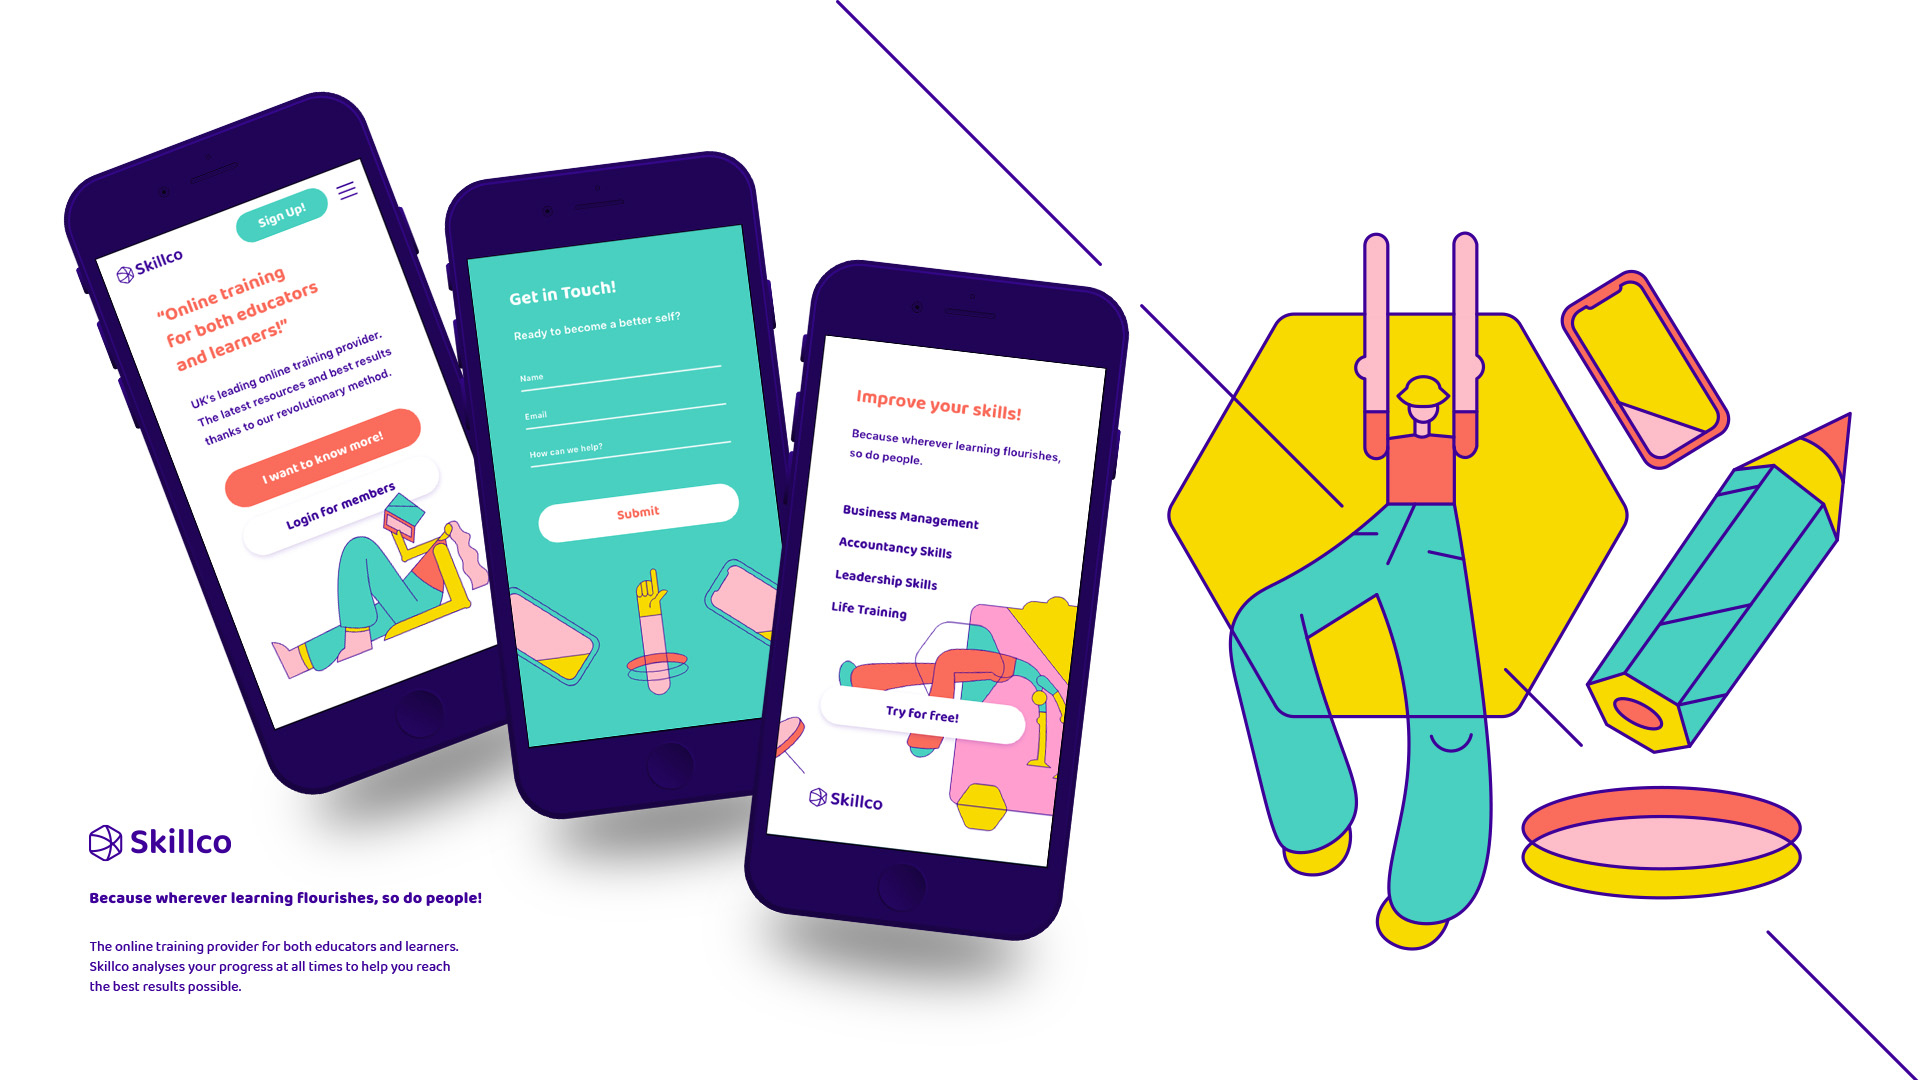 Image of 3 mobile phone screens displaying a website for Skillco next to an illustration of a person with their arms in the air and drawings of a mobile phone and a pencil